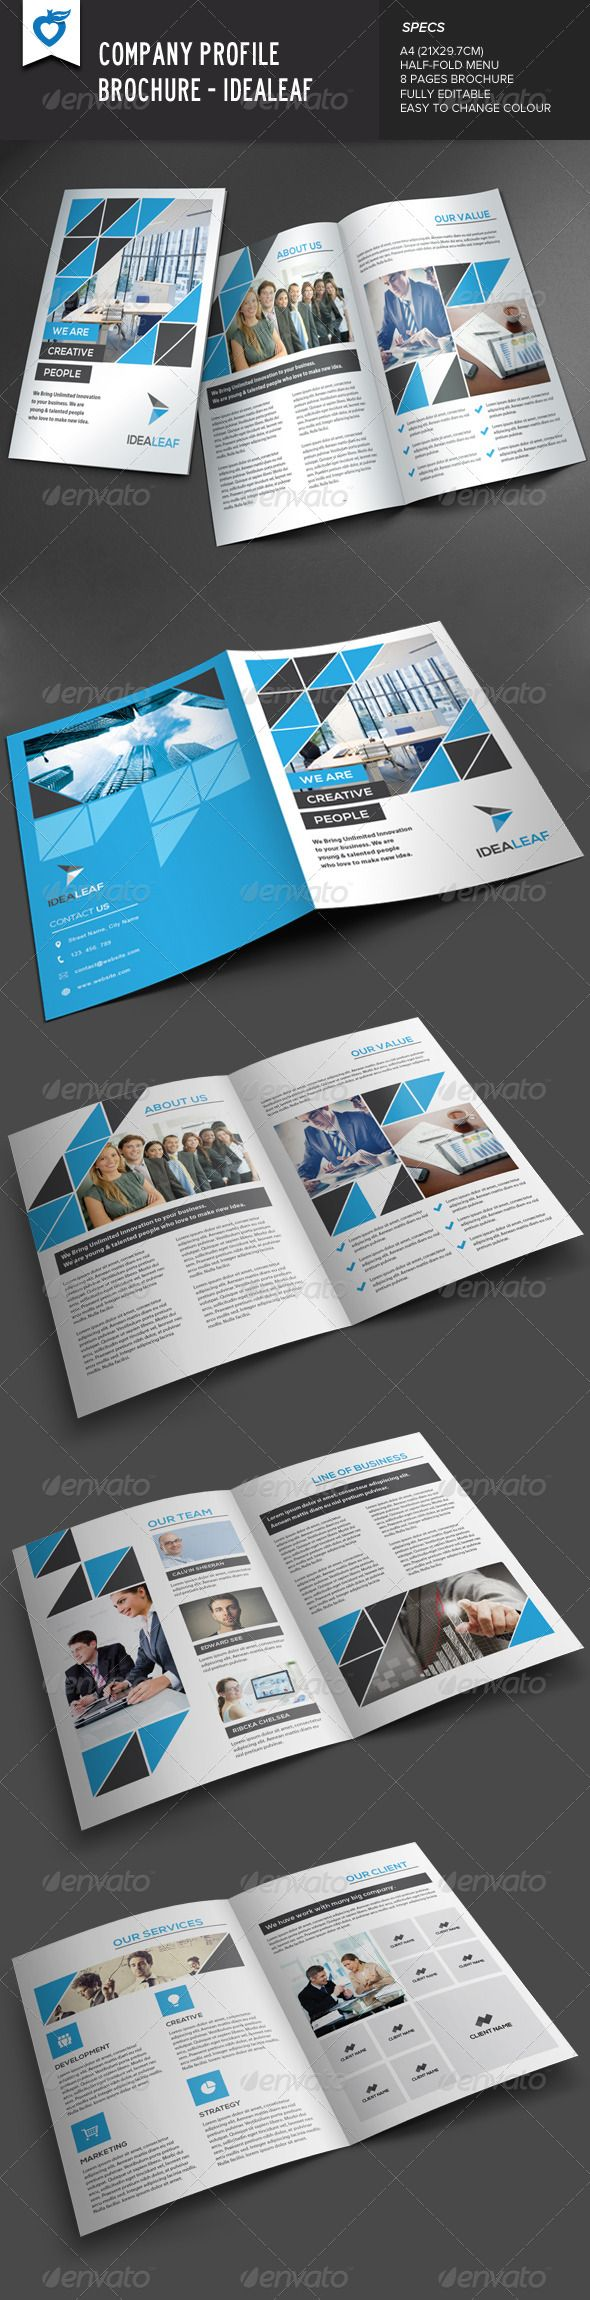 company profile brochure idealeaf brochures print templates